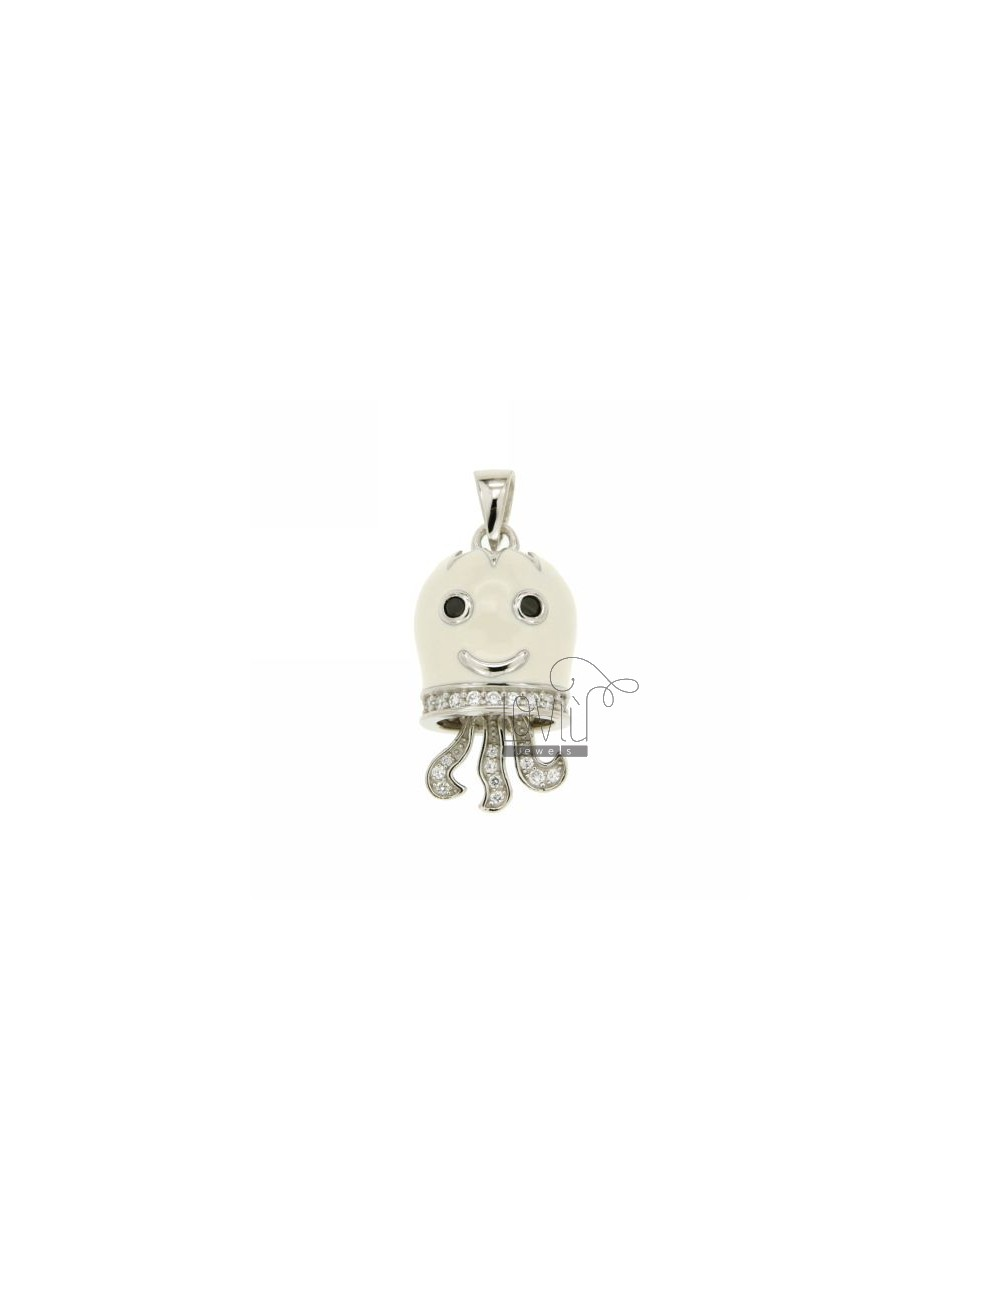 OCTOPUS PENDANT BELL 27X15 MM WHITE GLAZED WITH INSERTS WITH ZIRCONIA WHITE AND BLACKS IN RHODIUM AG TIT 925